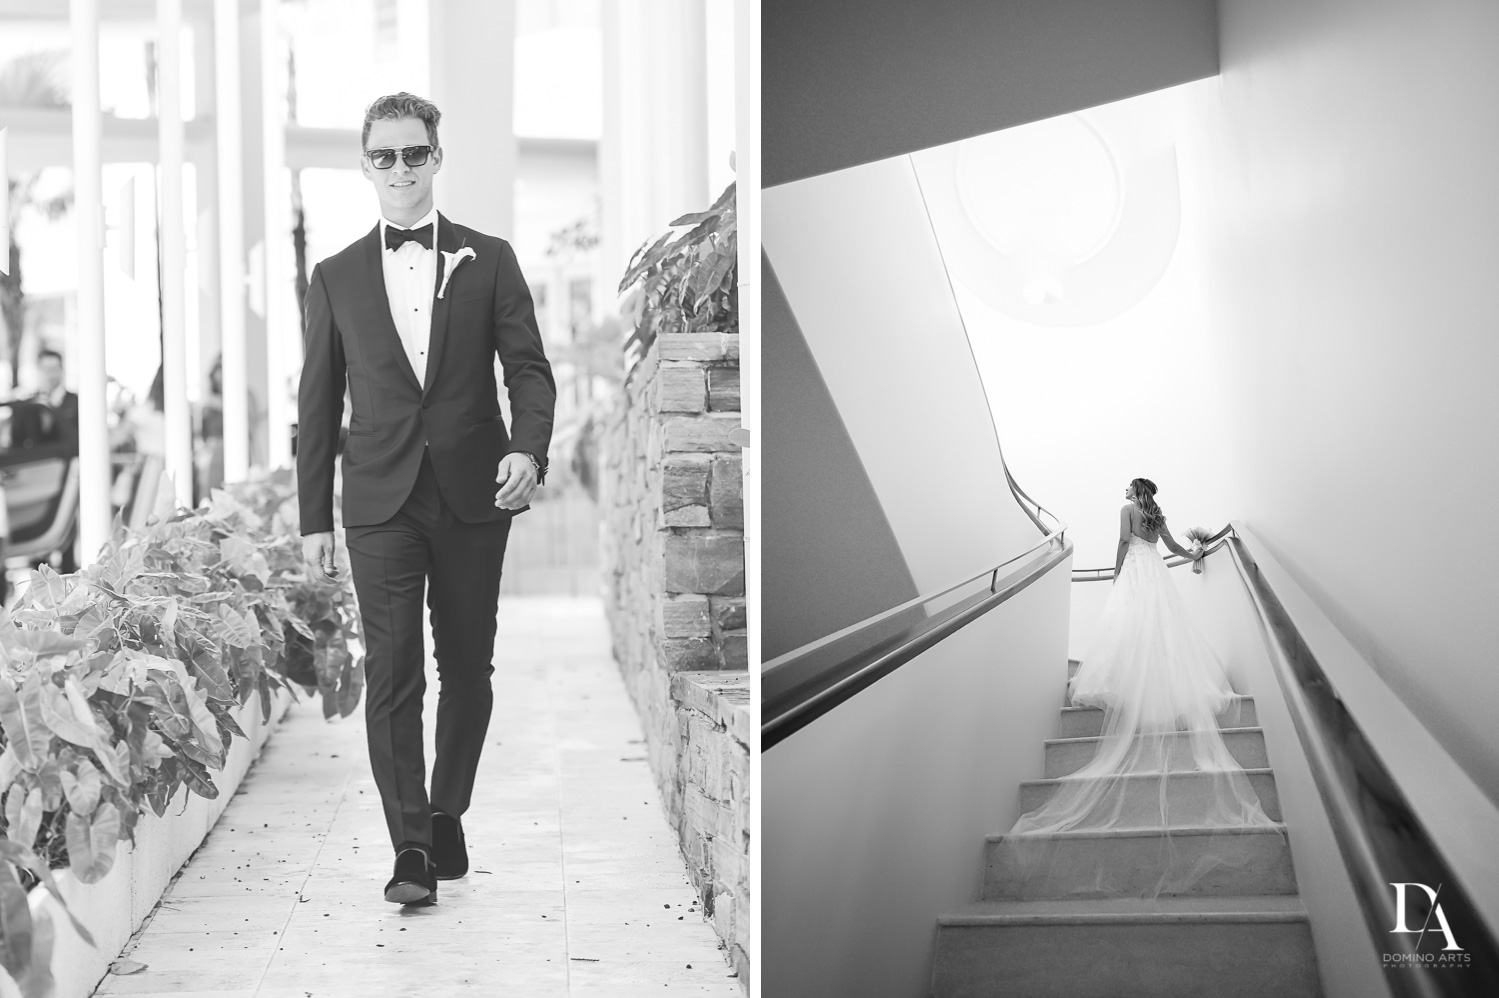 Artistic wedding picture of bride and groom at Faena Hotel Miami Beach